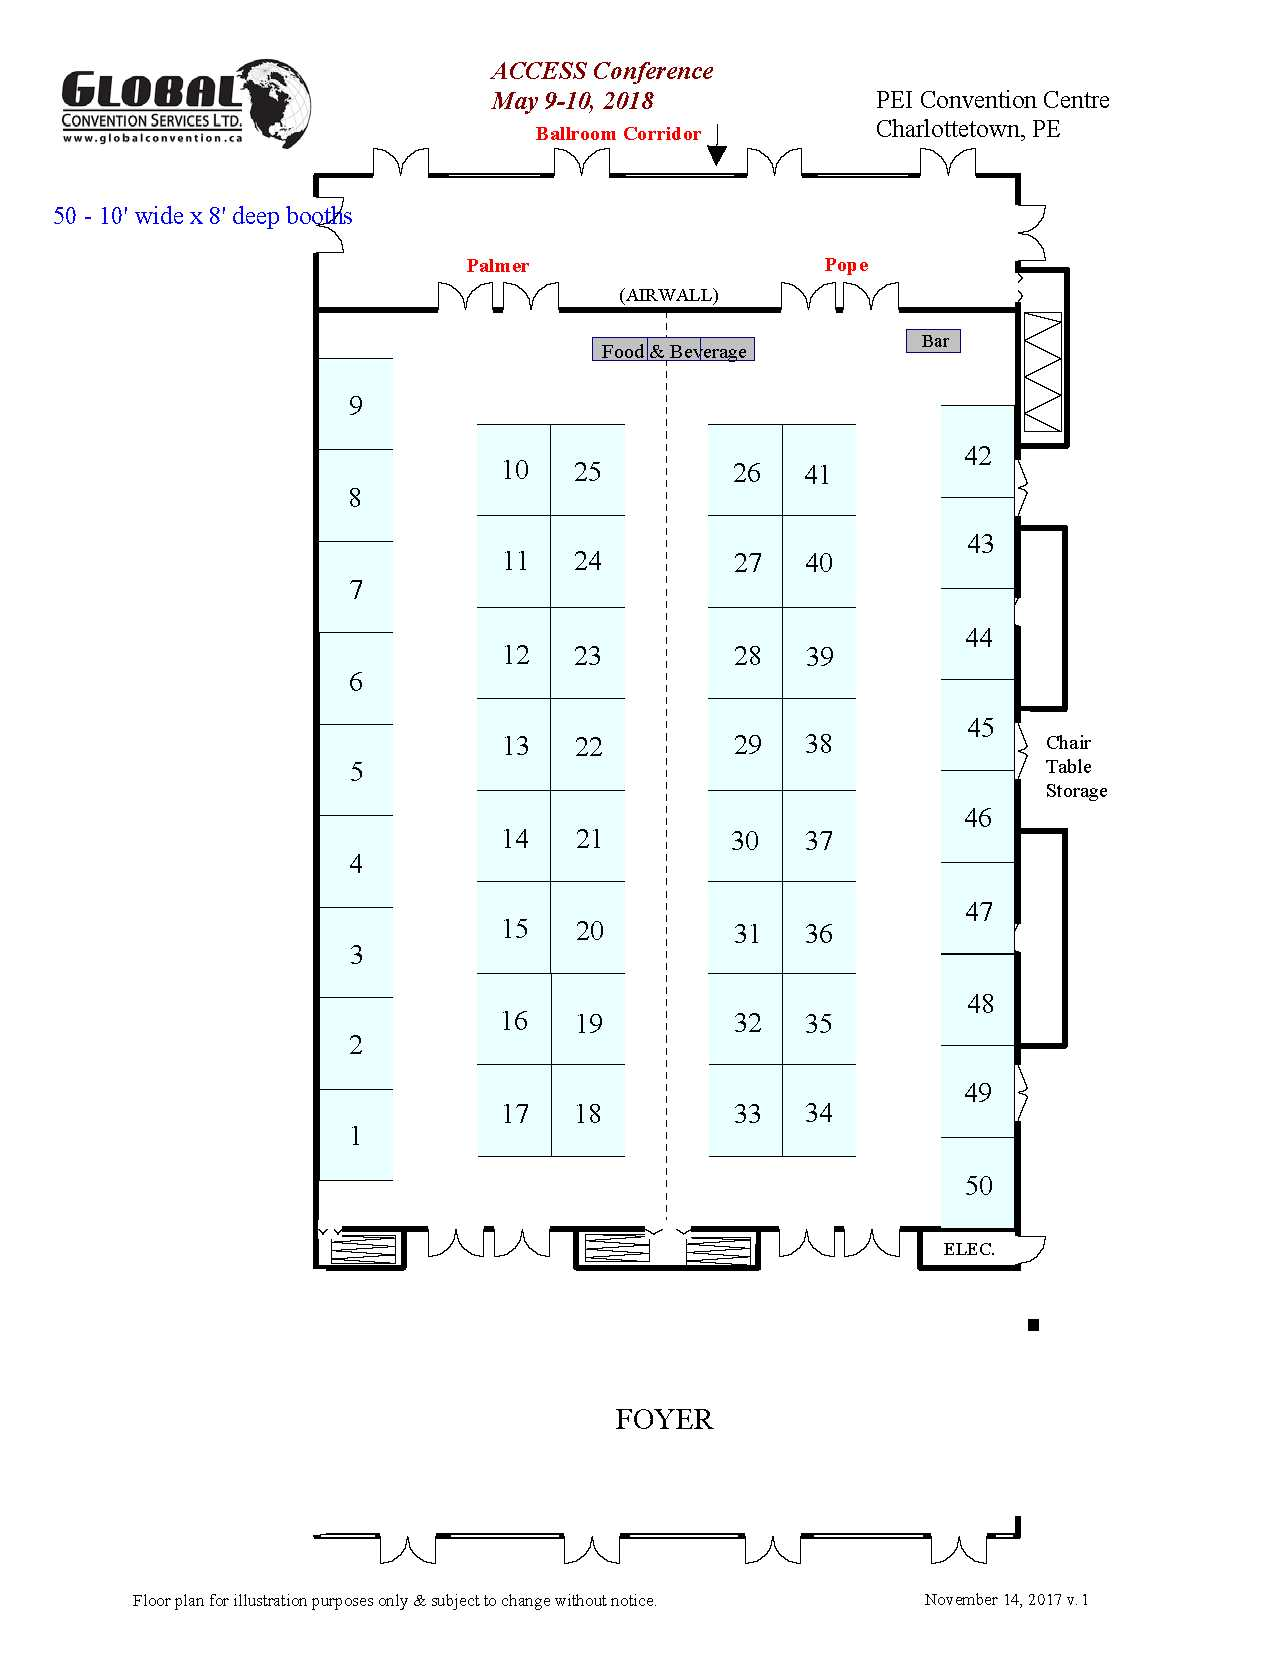 Floor plan v1- ACCESS 2018